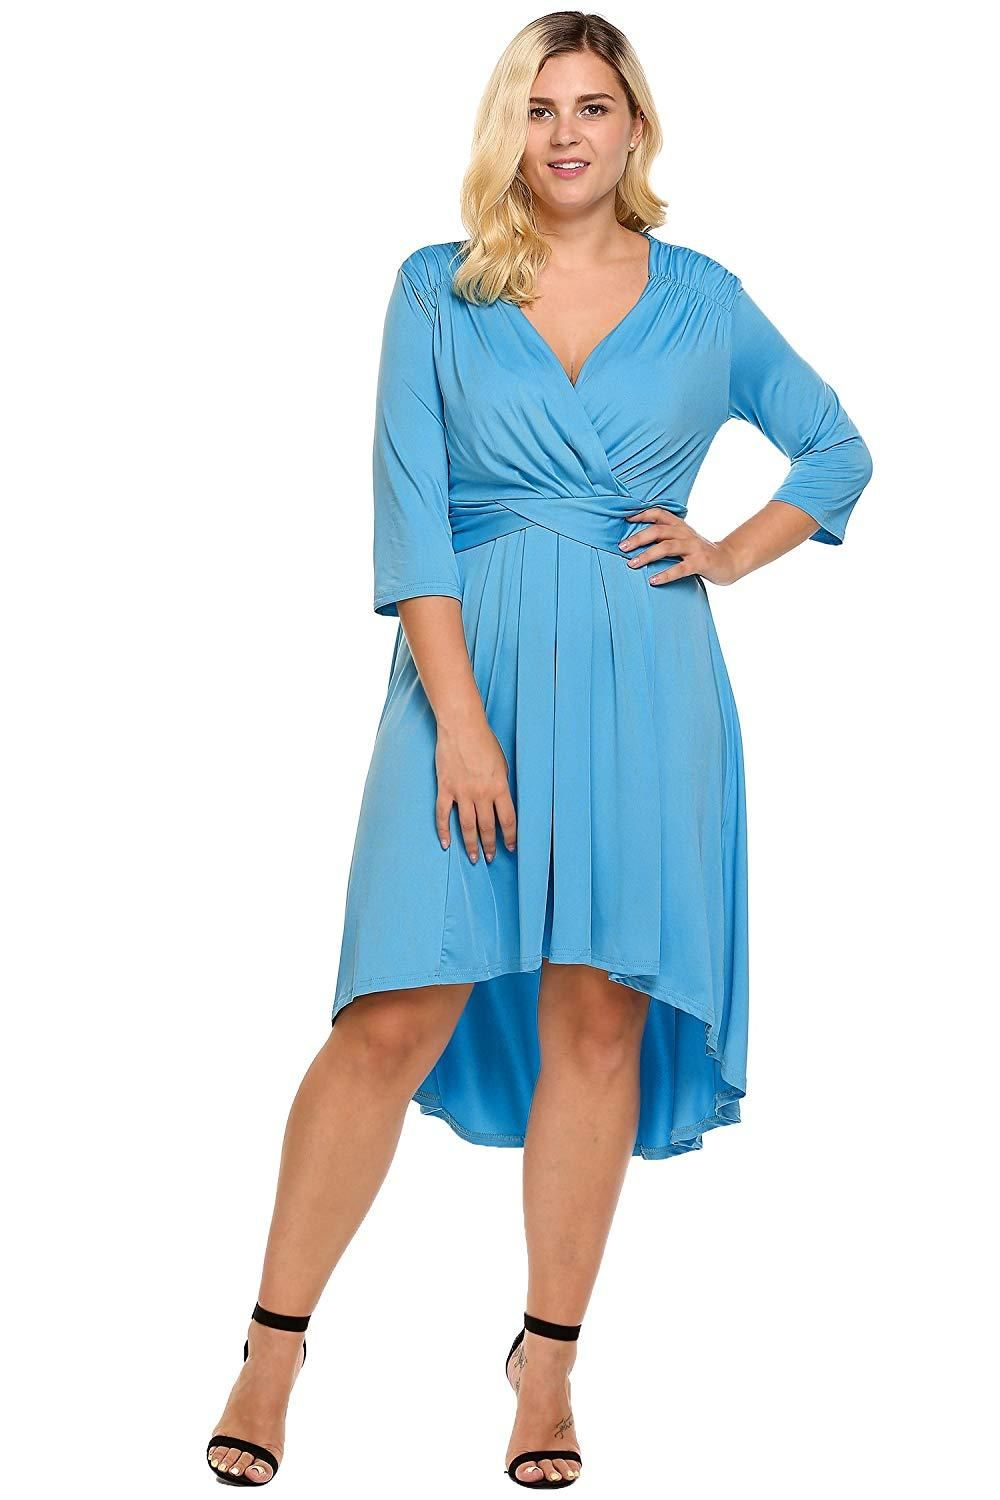 dc63cc6648d2d1 IN'VOLAND Women's Plus Size Women's 3/4 Sleeve Dress Ruched Waist Classy  V-Neck Casual Cocktail Dress